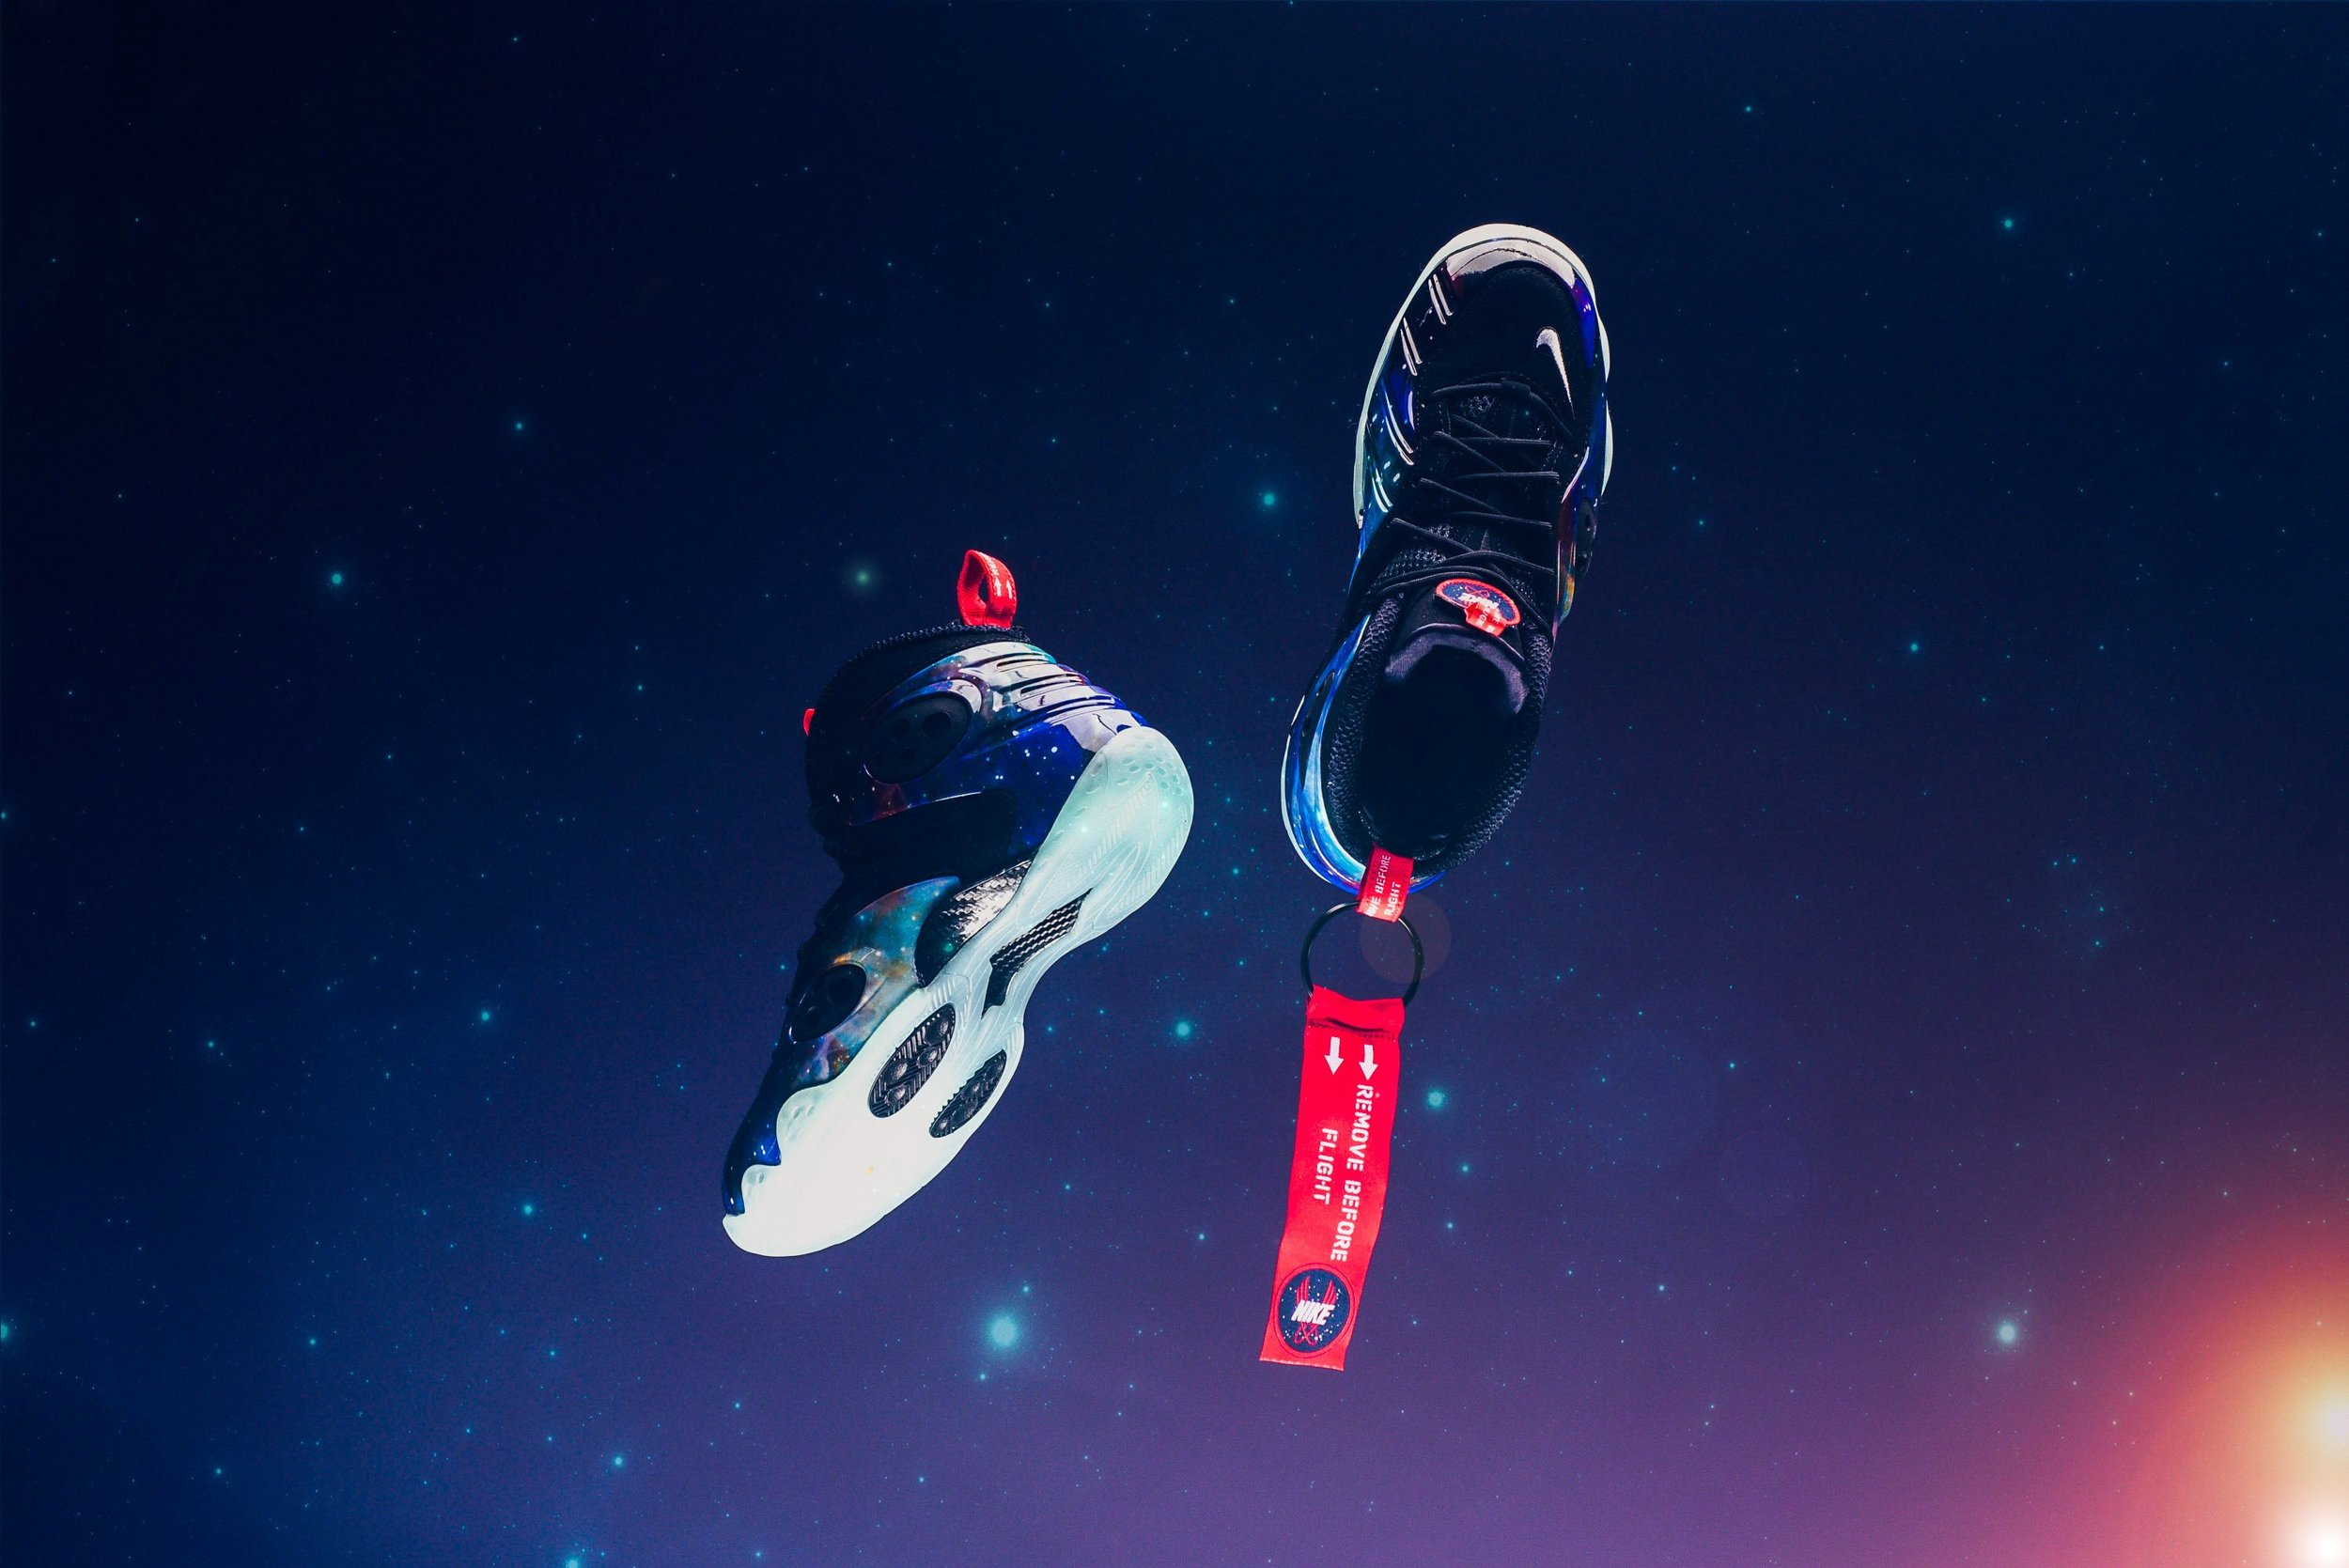 Nike_Zoom_Rookie_PRM_Black_Black_Action_red_Galaxy_CI2120-001_sneaker_Politics_Last_edit-9.jpg